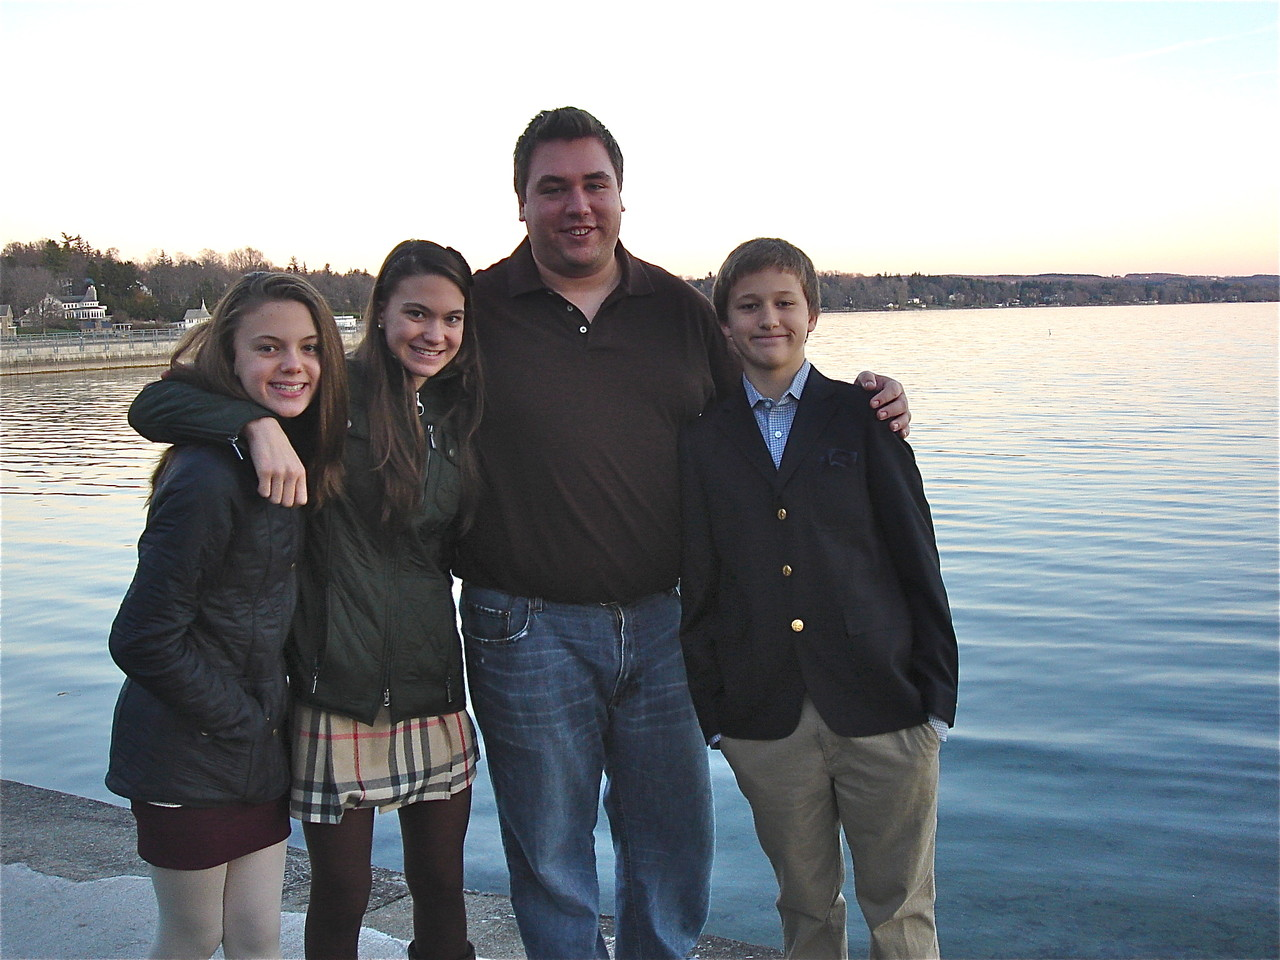 Thanksgiving, November 22, 2012.  Kate, Ellie, Greg, & Jack.